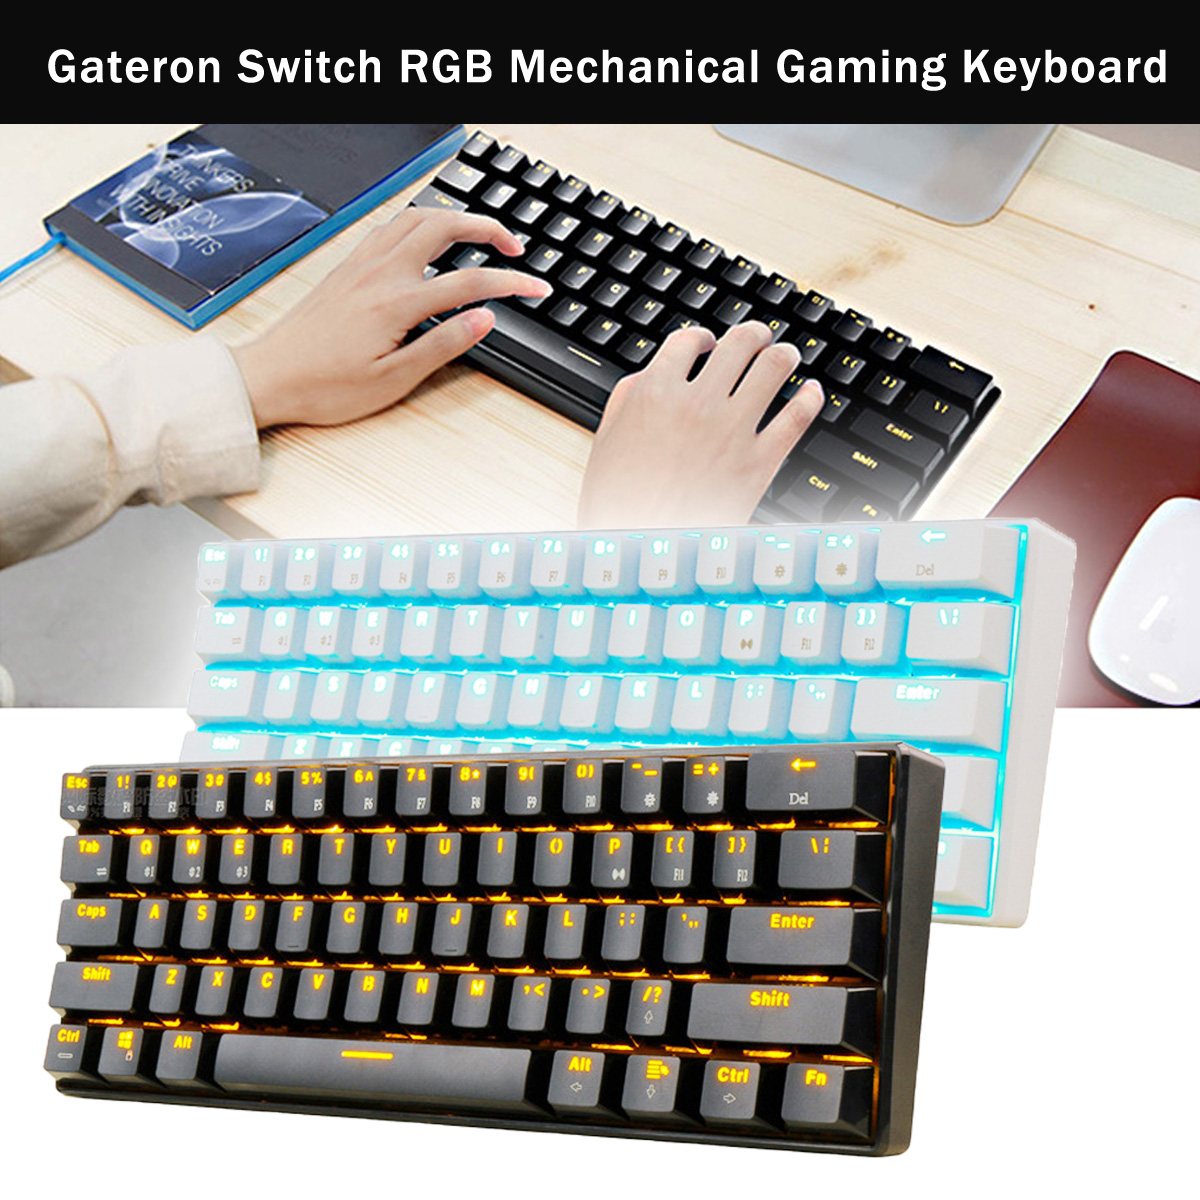 RK 61 Gateron Switch RGB Mechanical Gaming Keyboard bluetooth LED Backlit Waterproof for Desktop English Layout ducky one cherry mx red